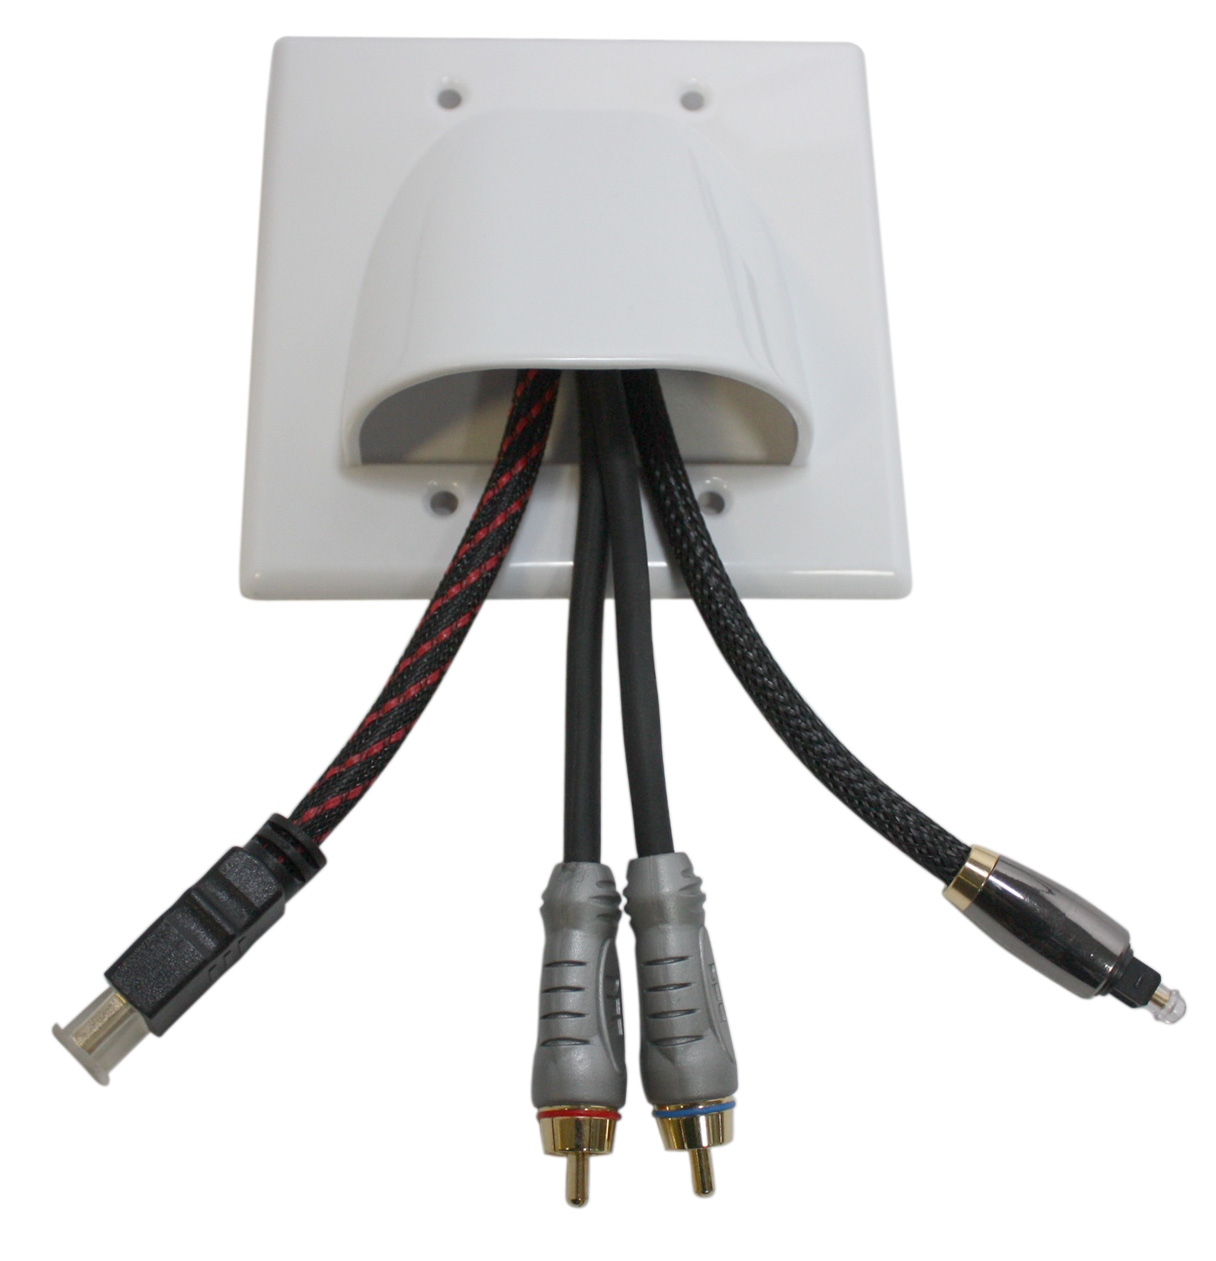 Buy Dual Gang Low Voltage Cable Management Wall Plate Online For Wiring Hdmi Plates 698cad At